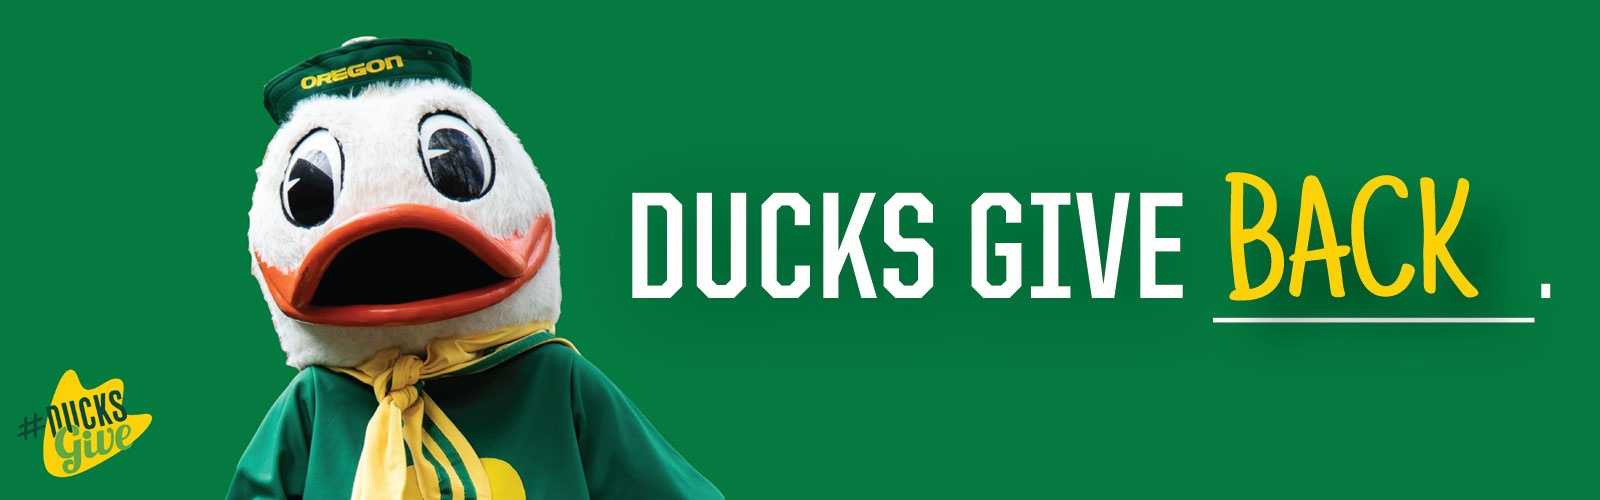 "Photo of the UO Duck next to the words ""Ducks Give Back"""